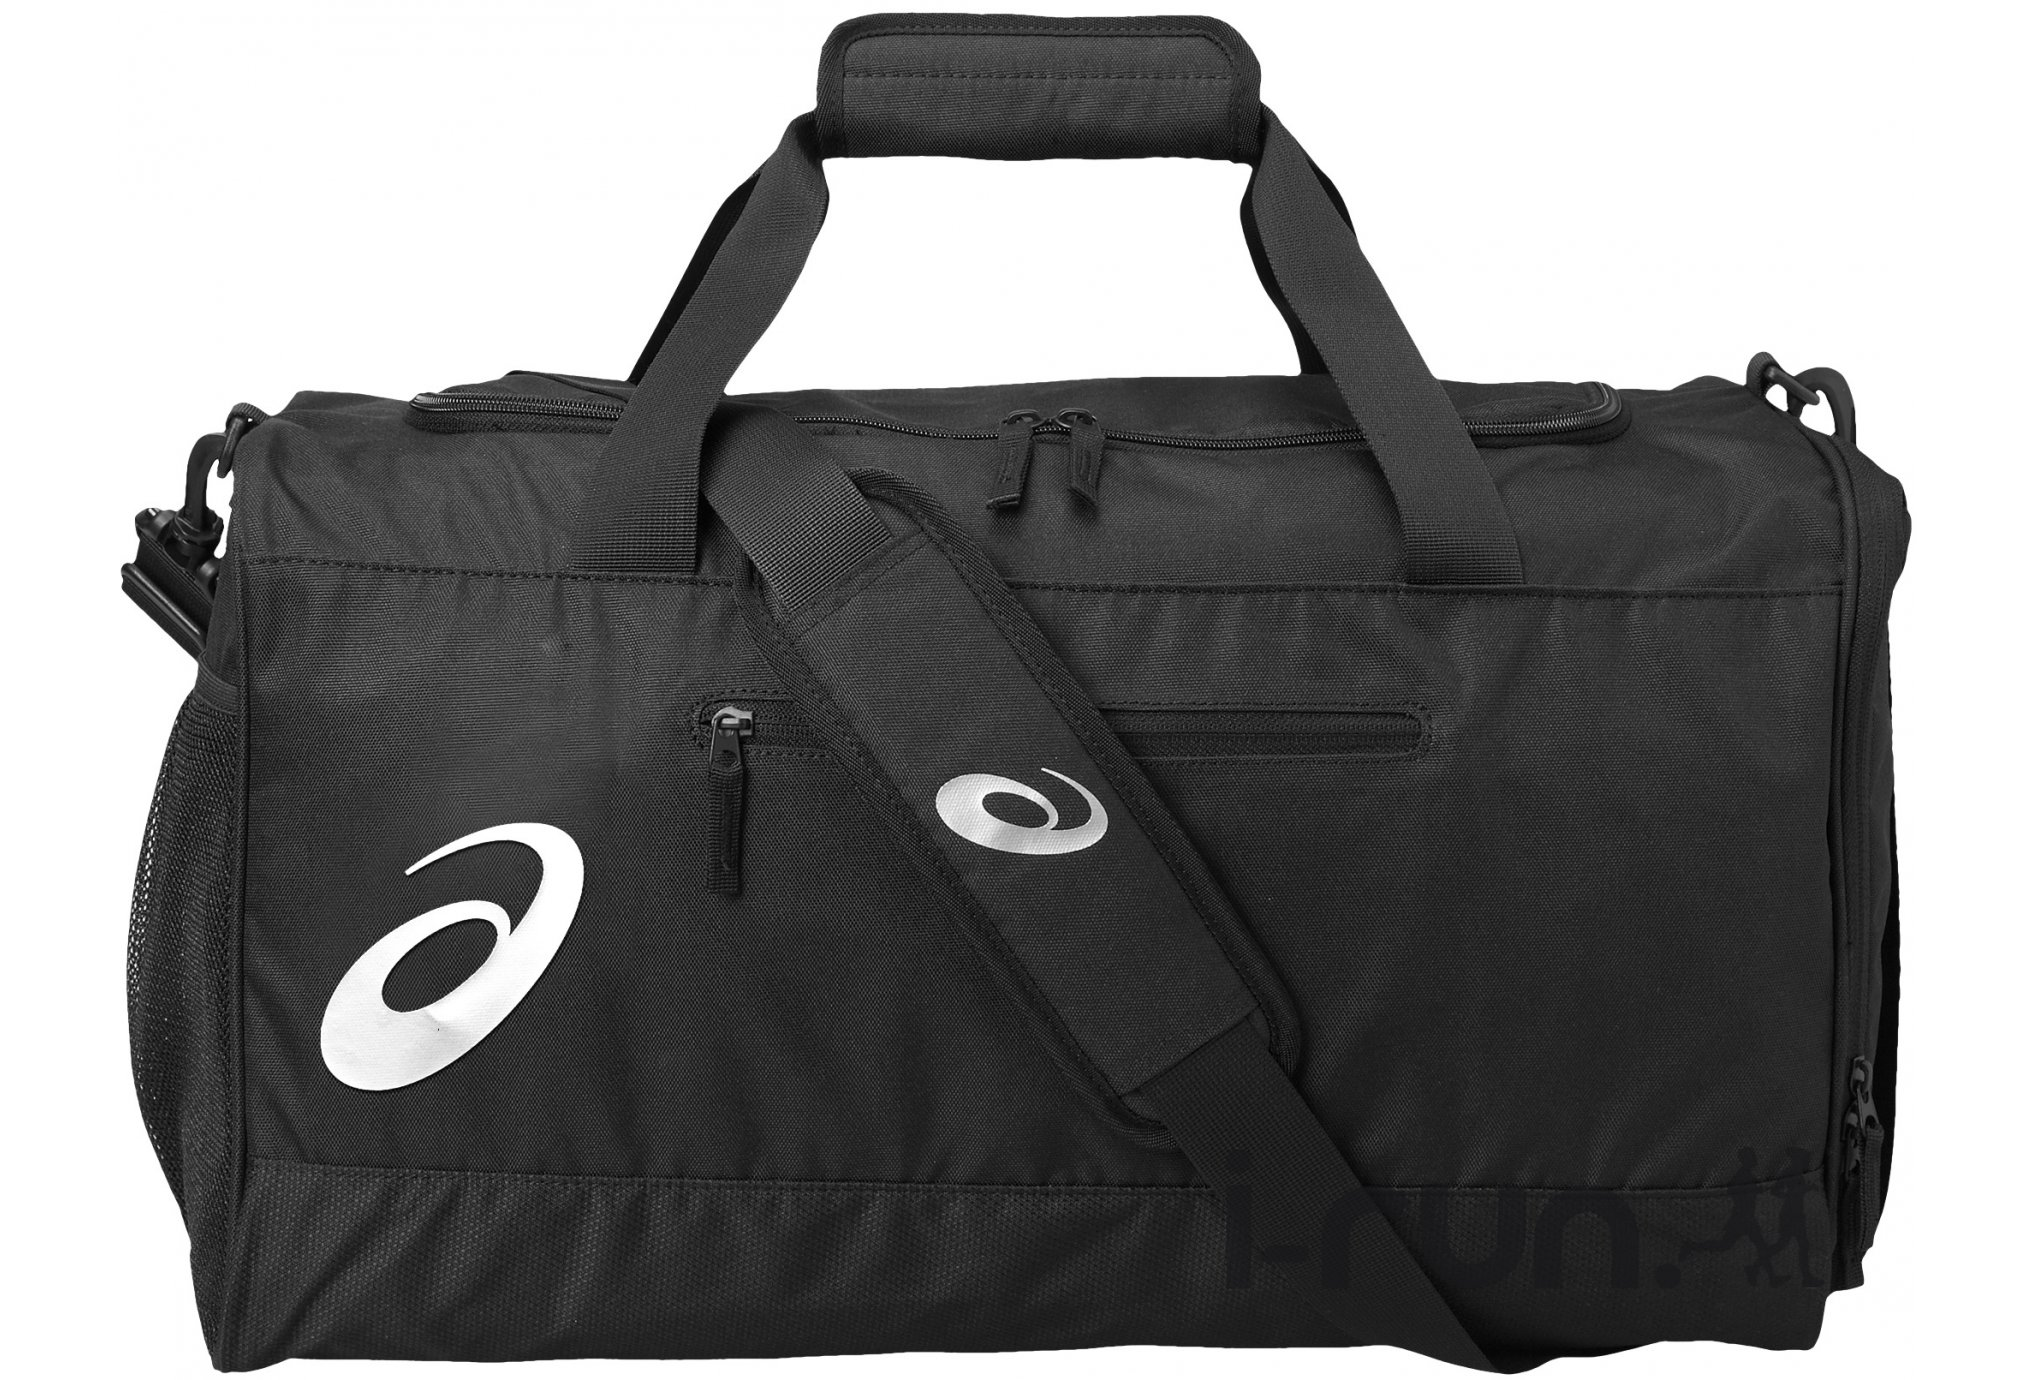 Asics Sac de sport Team Core Holdall Medium Sac de sport